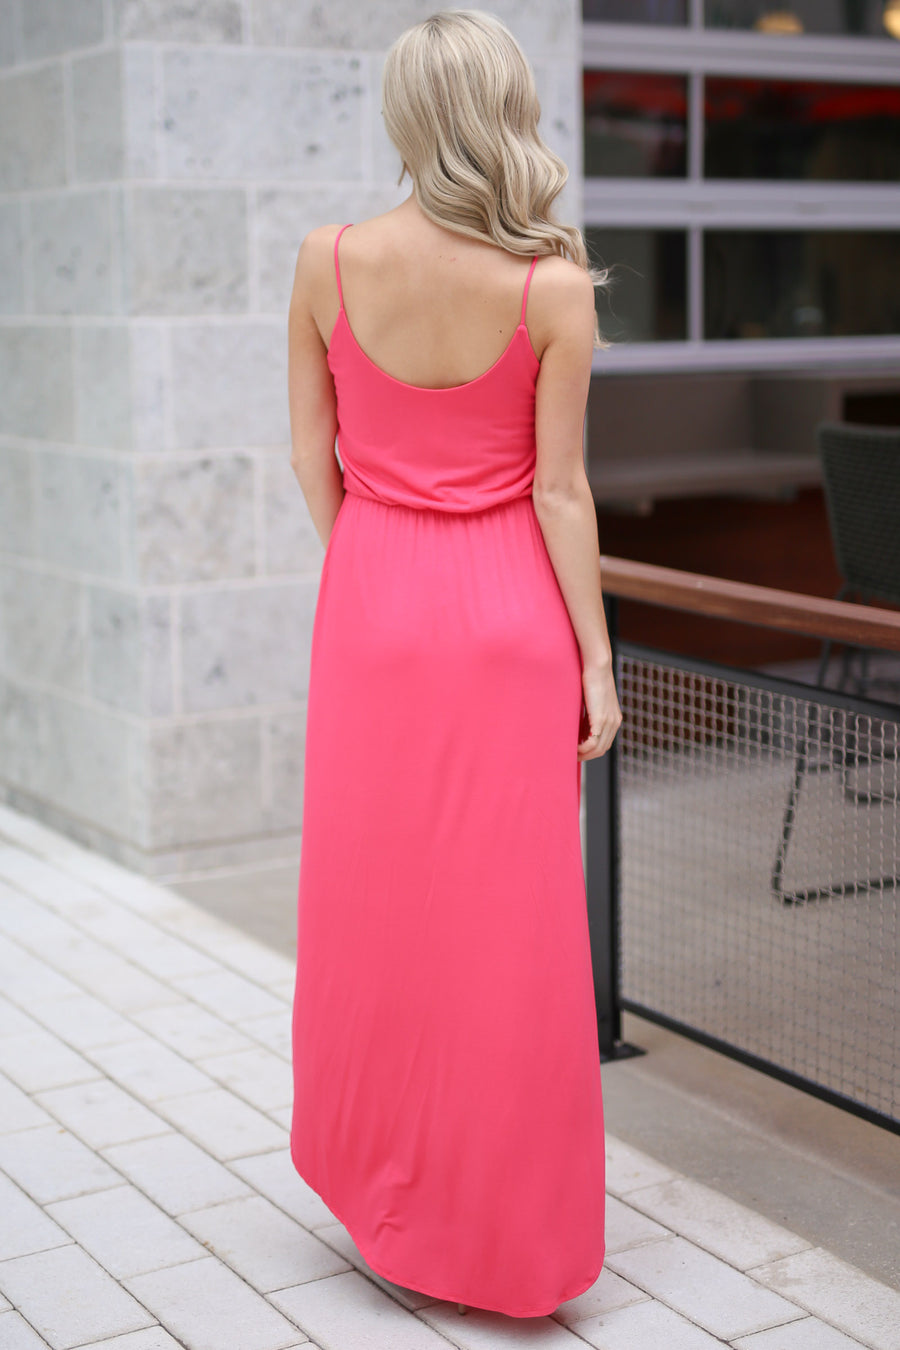 Bring on the Sun Maxi Dress - Coral v-neck high low maxi dress, side, Closet Candy Boutique